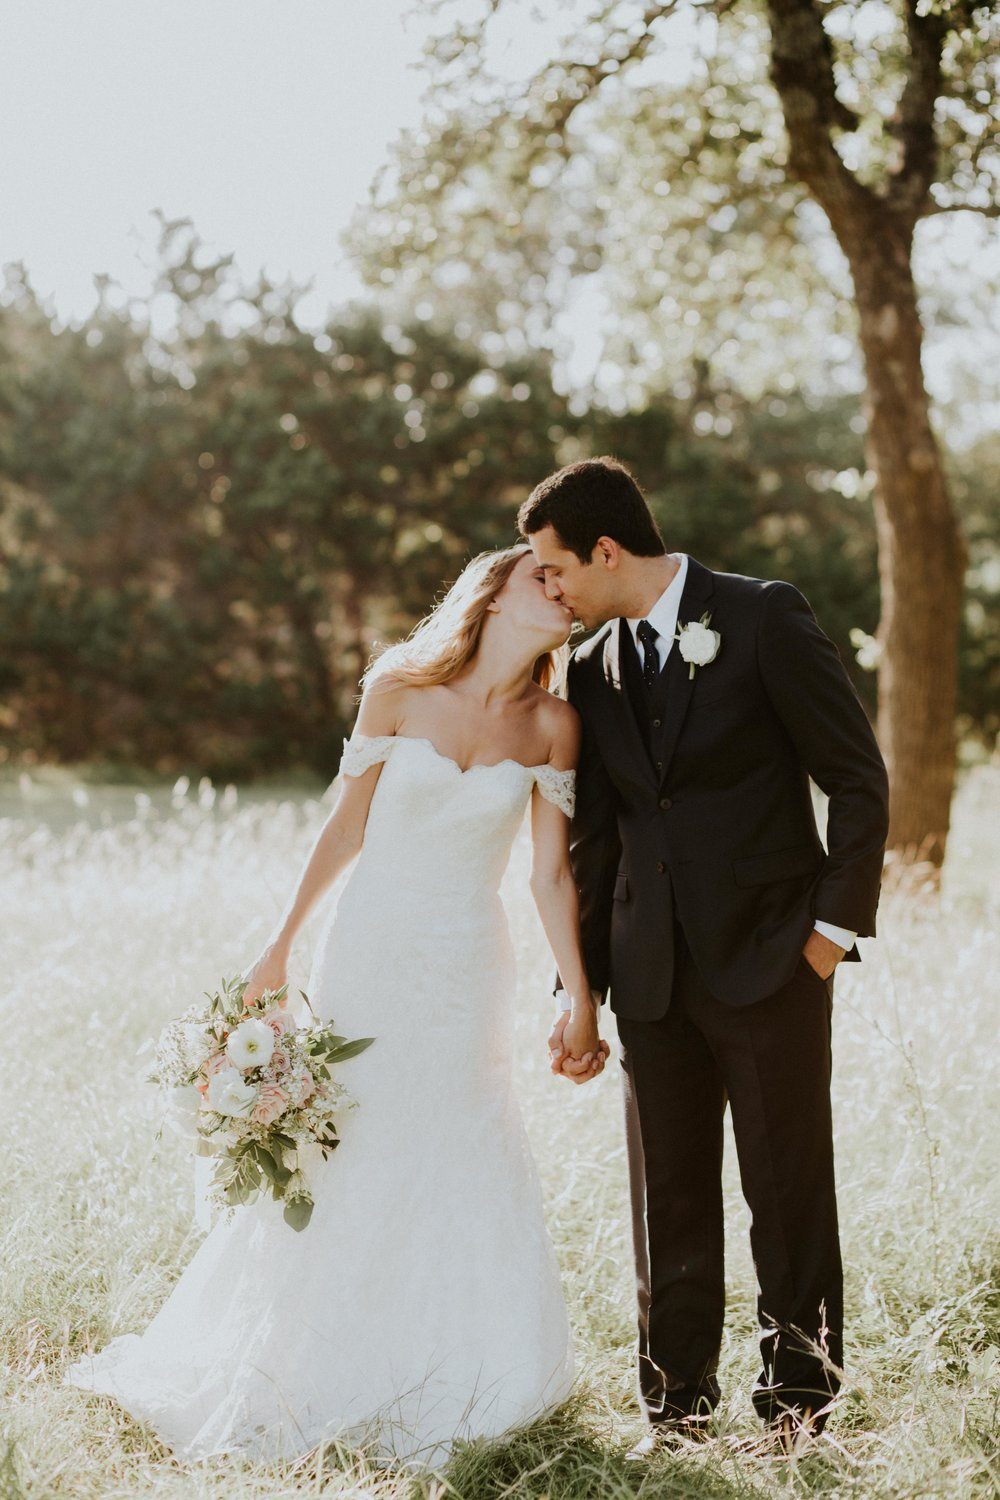 CarolineChase-Wedding61.jpg